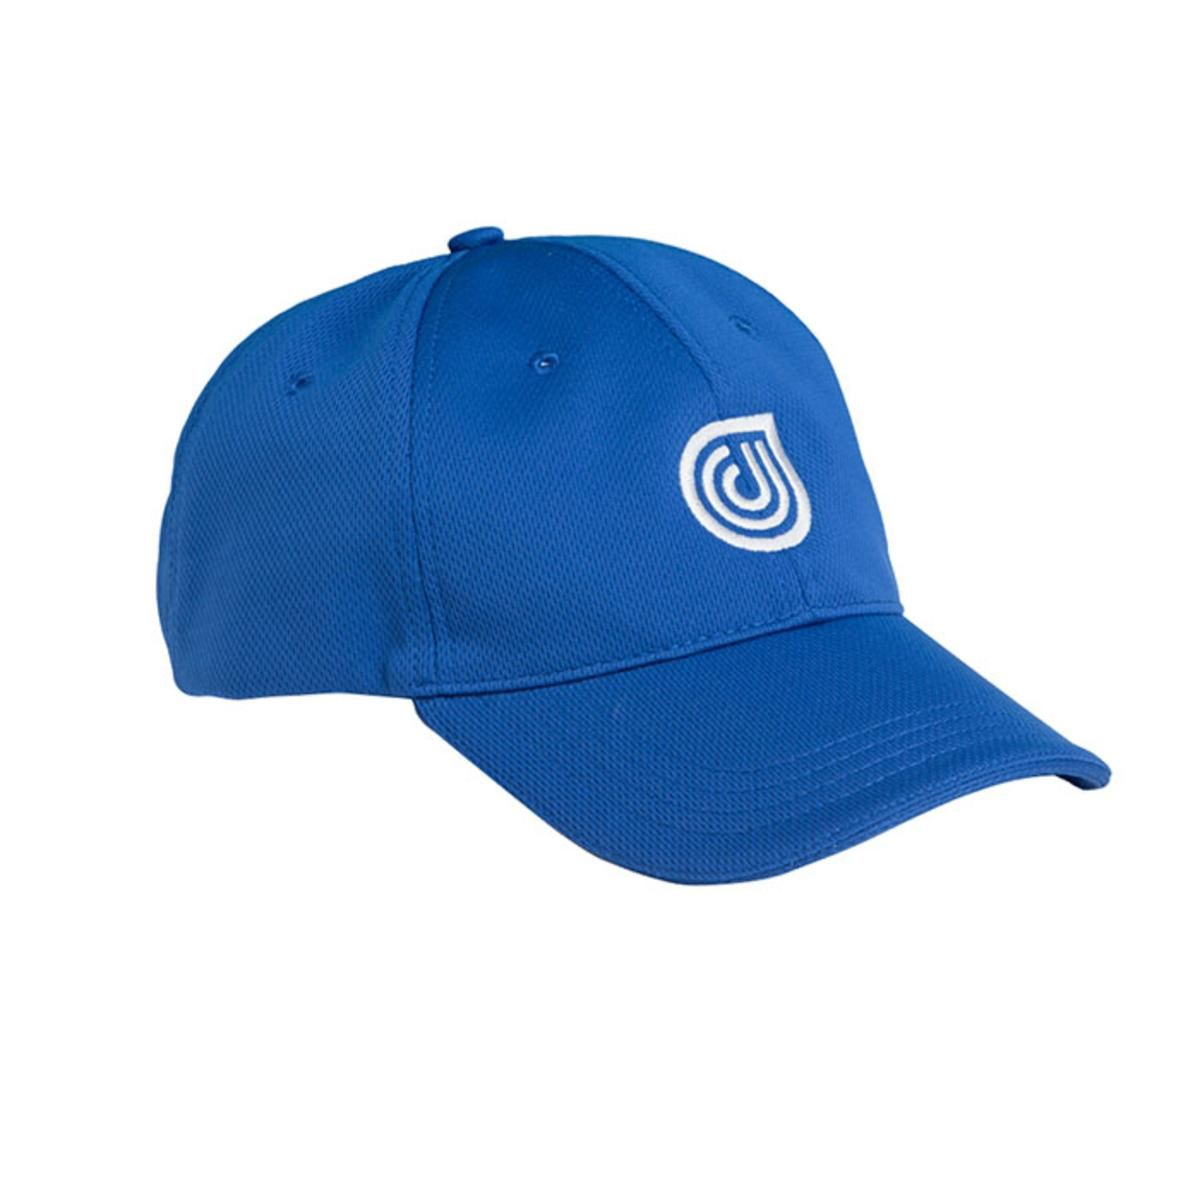 c658dd1e4 Dr. Cool Active Cooling Cap - Men's - The Warming Store